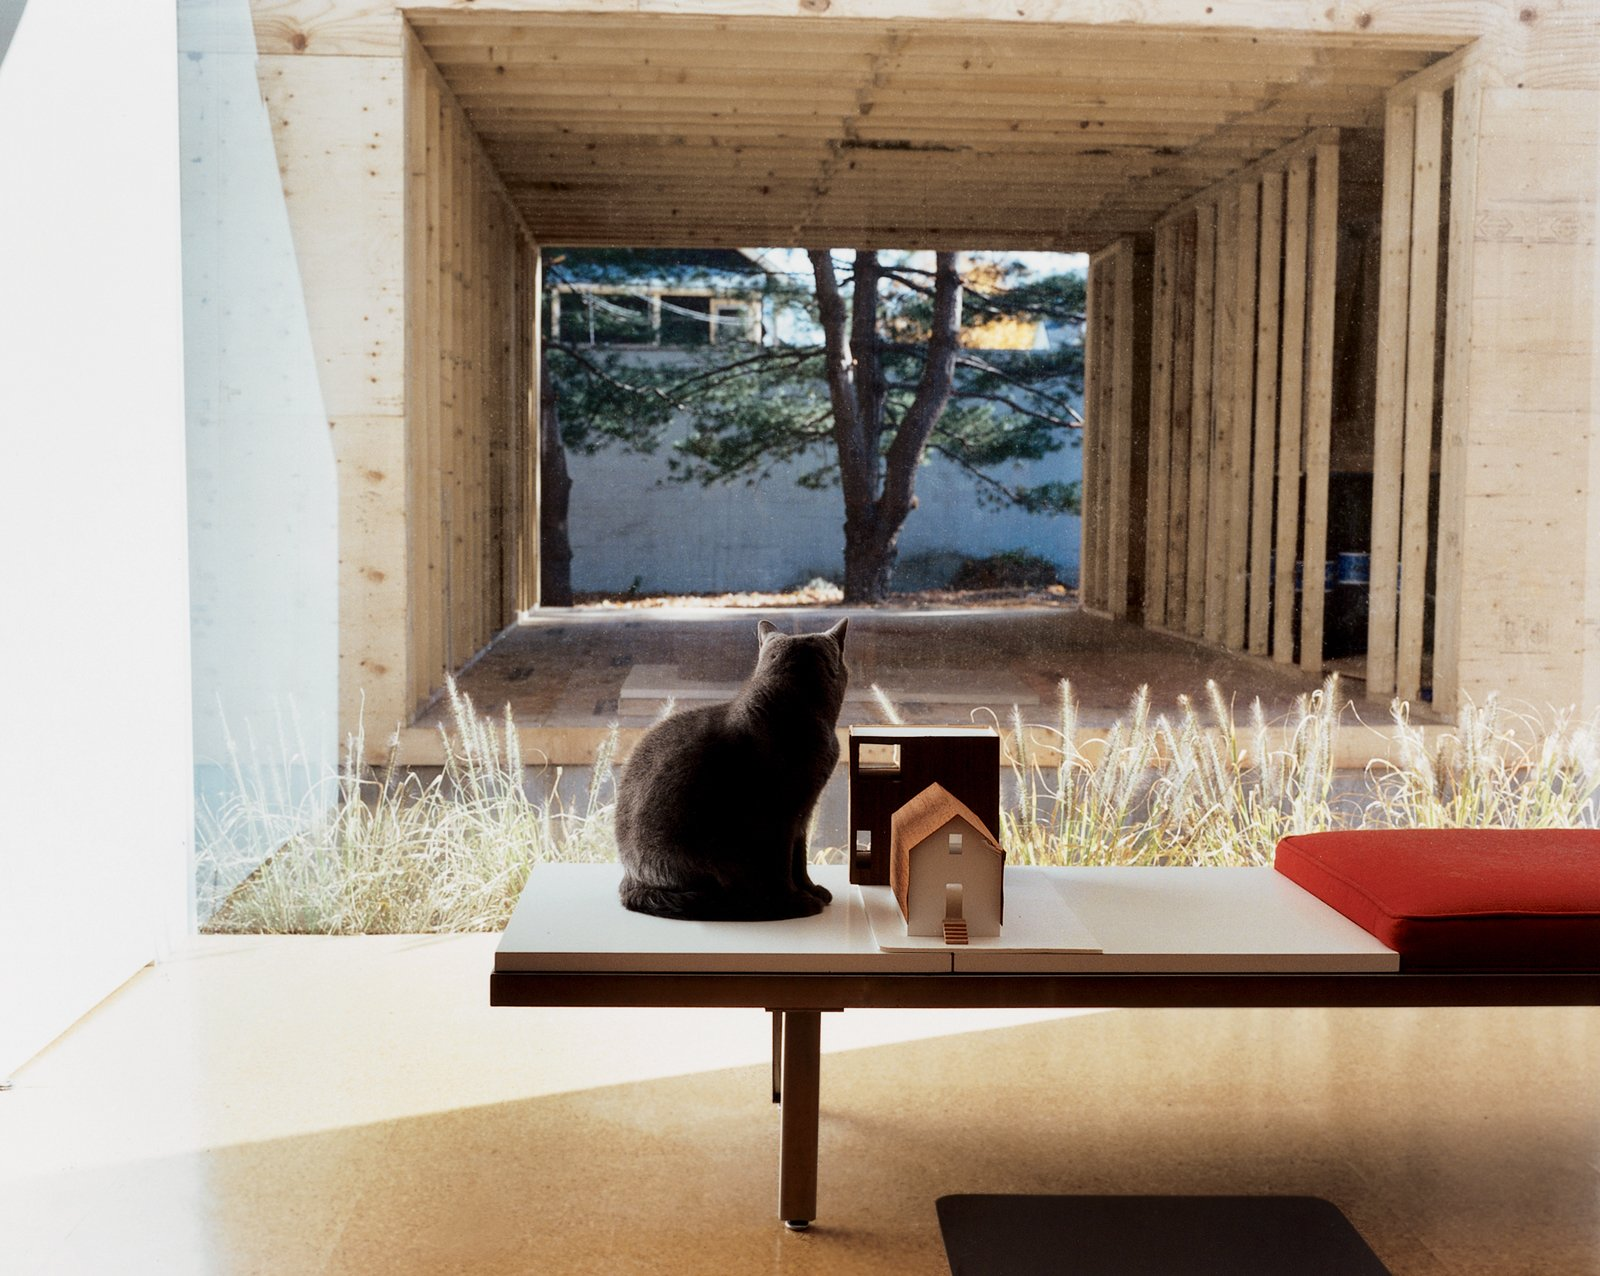 Seated on a George Nelson bench, feline resident Miu Miu gazes through the east picture window at the ongoing construction. Sharing the bench is a quarter-inch-to-one-inch-scale model of the house and addition. New Beginnings - Photo 1 of 11